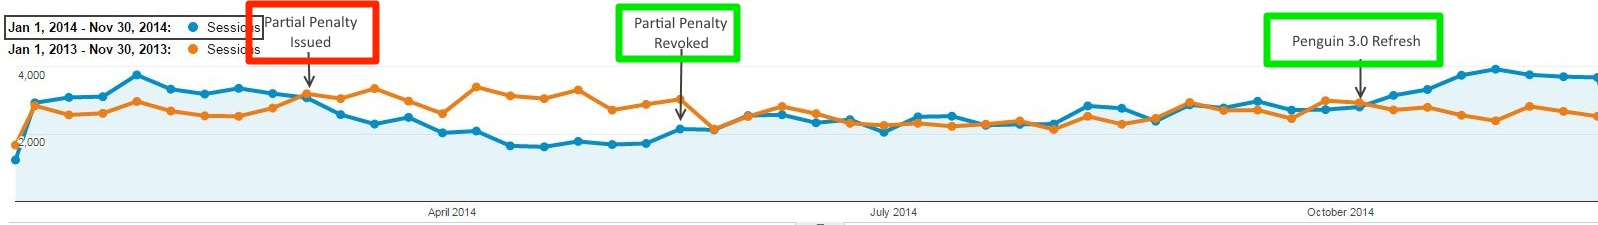 Google Analytics - Partial Penalty Revoked and Google Penguin 3.0 Refresh Traffic Increase